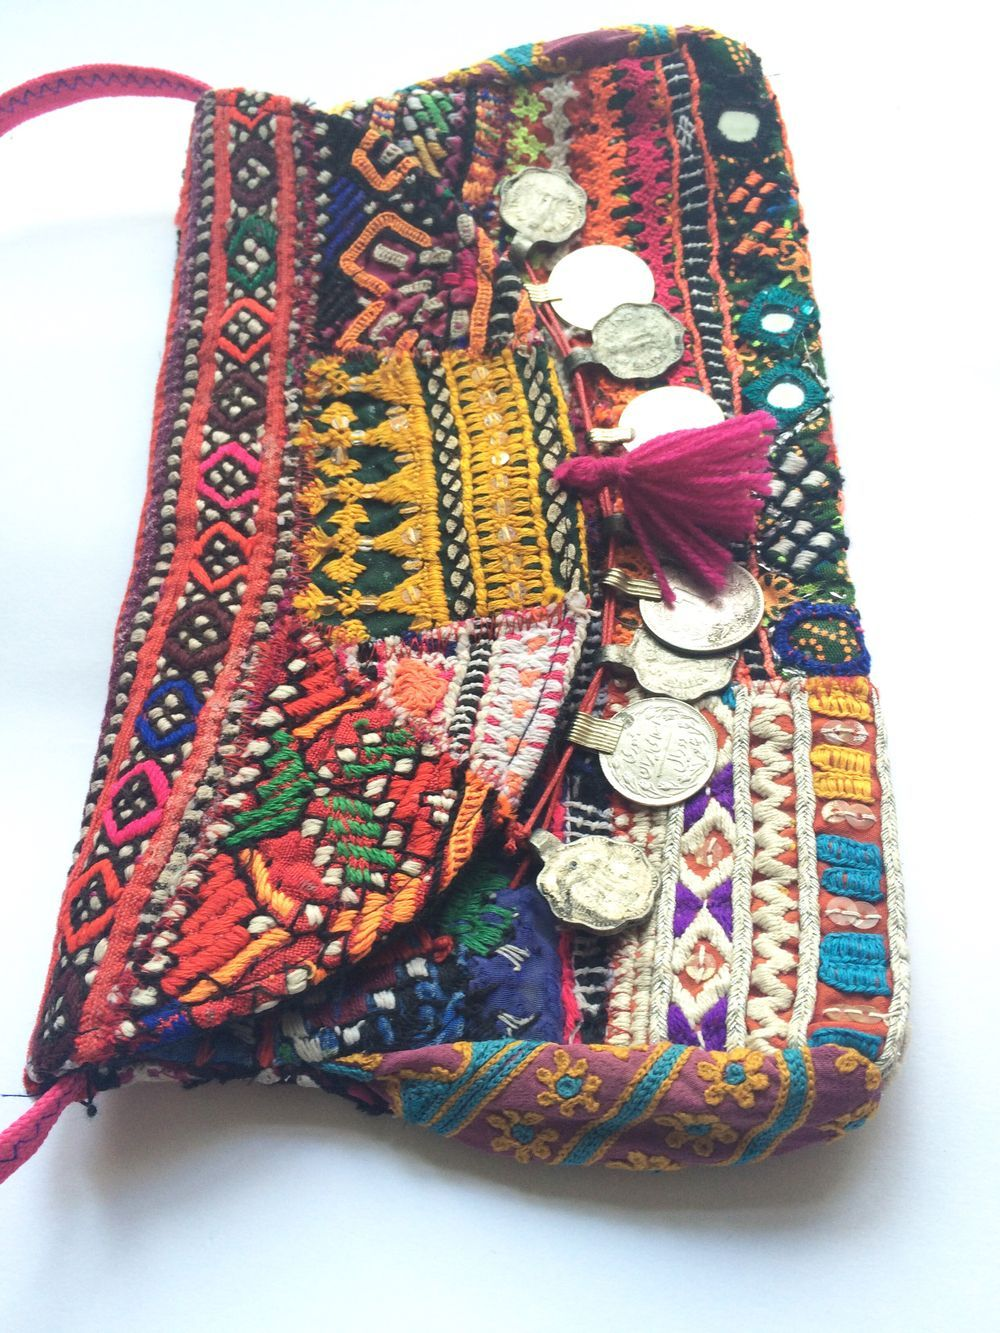 Clutch via Banglezzzz. Click on the image to see more!